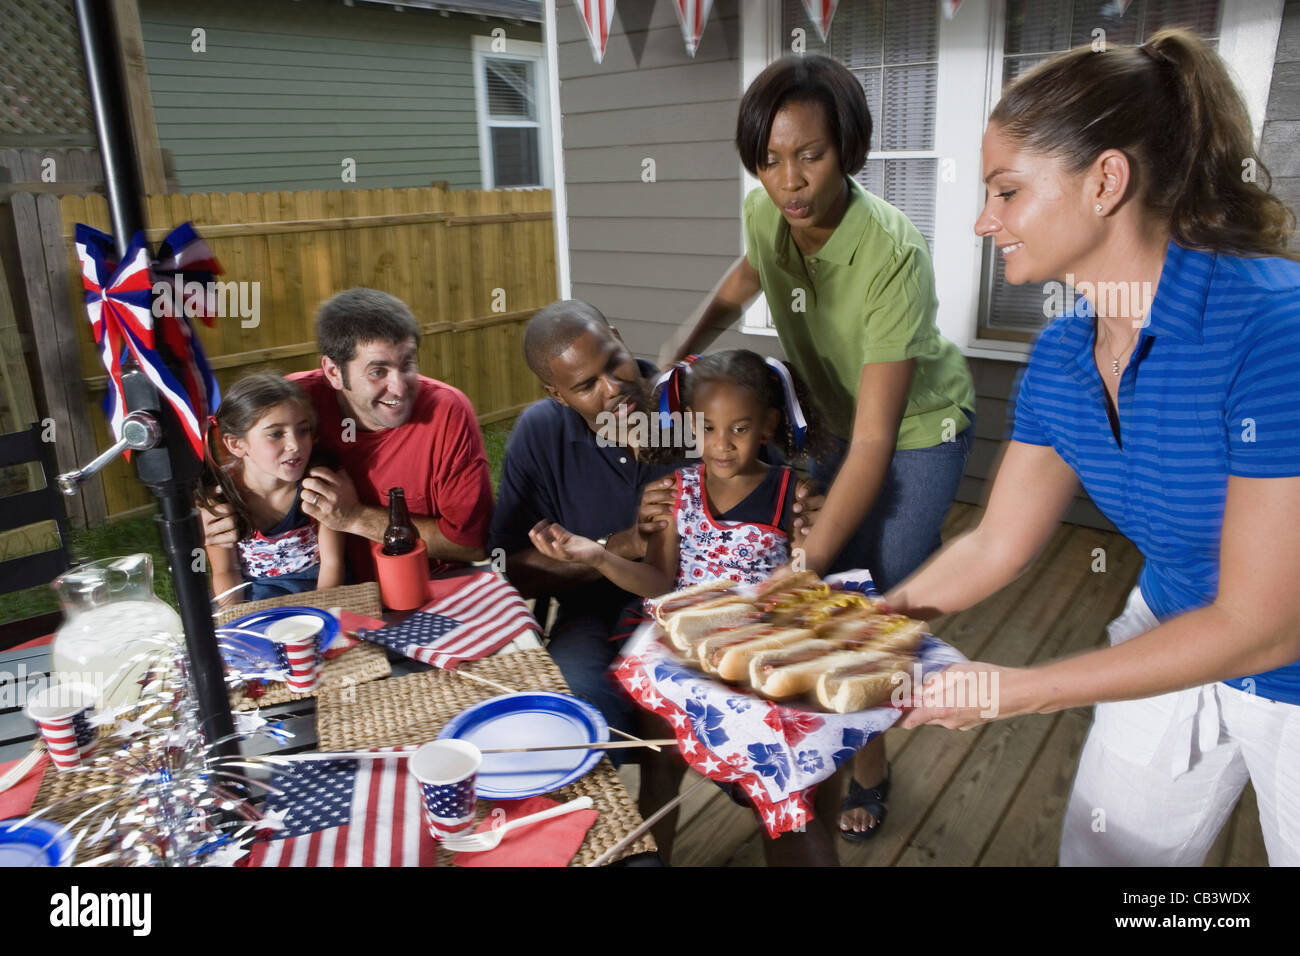 Two Families On Backyard Patio Enjoying A Cookout On The